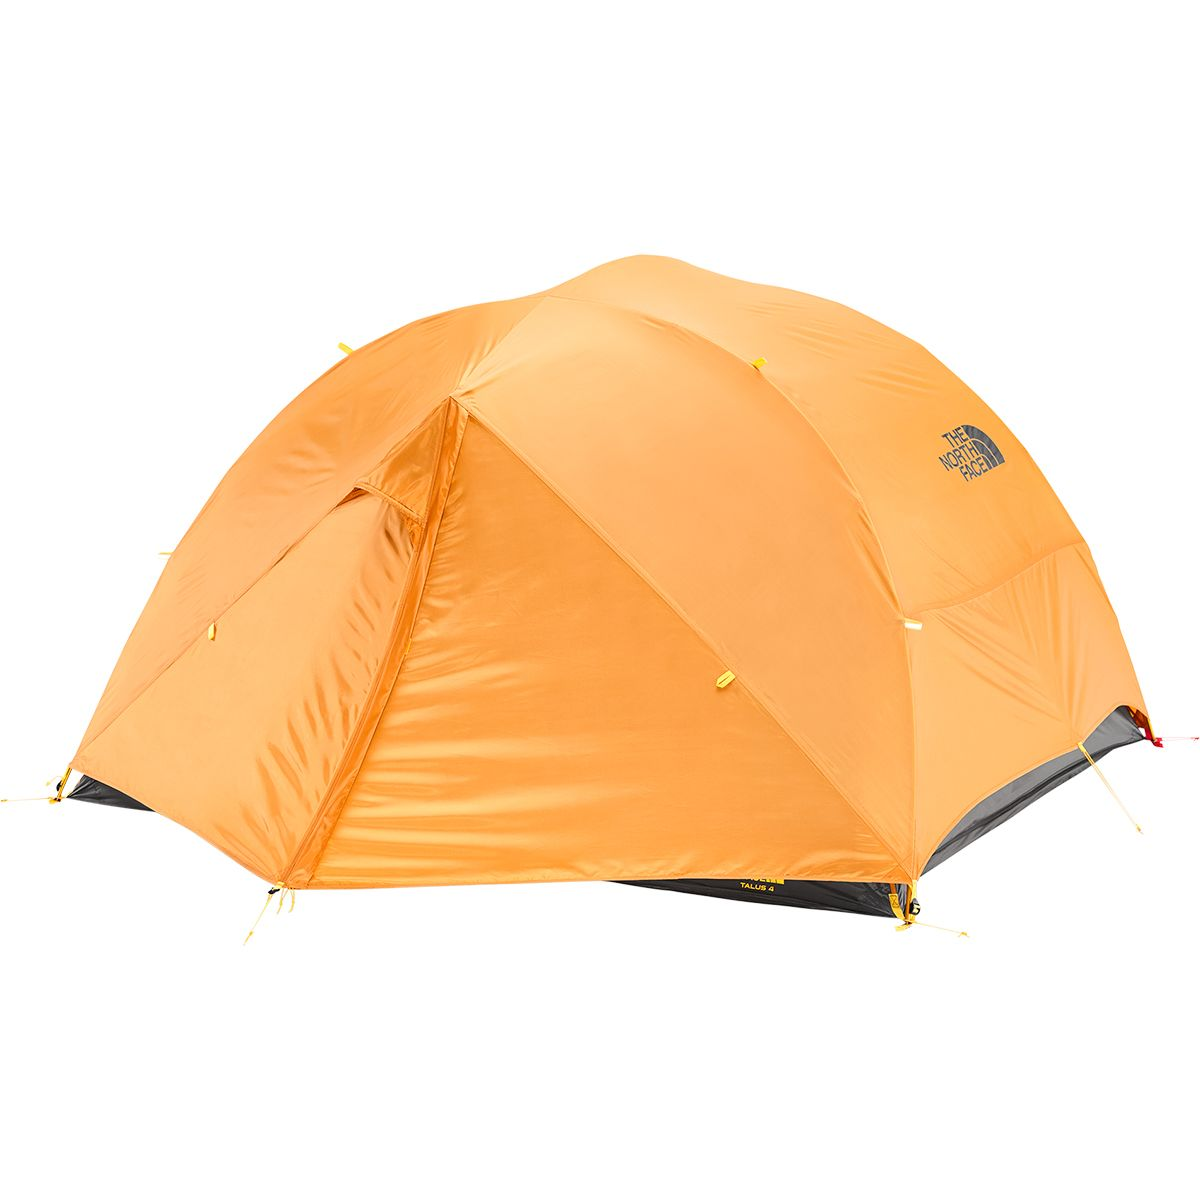 The North Face Talus 4